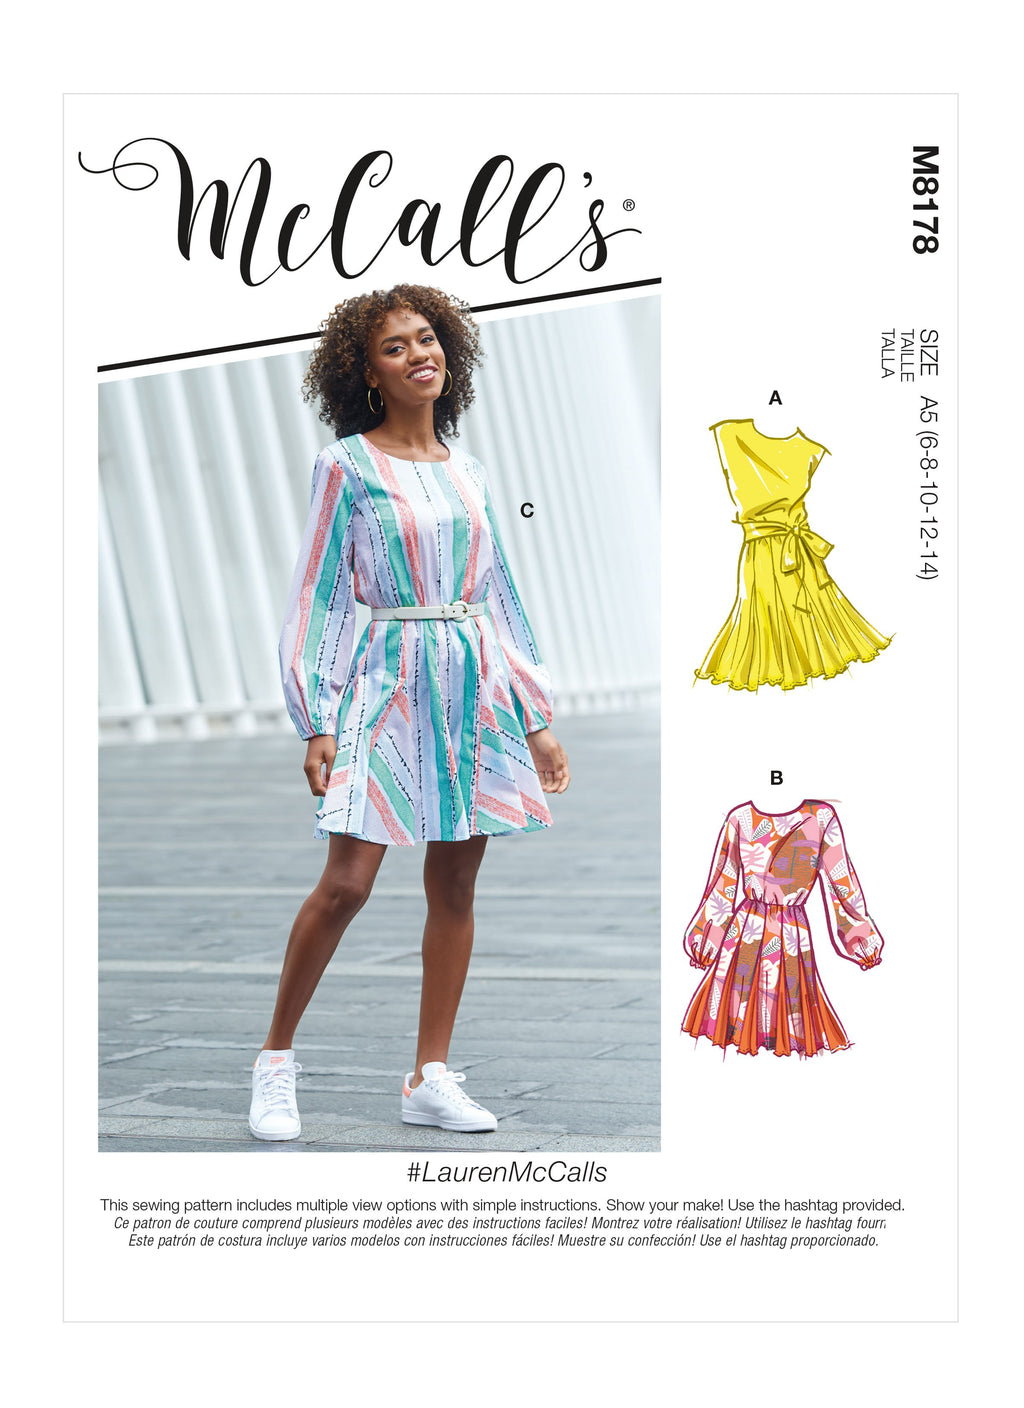 McCalls Sewing Pattern 8178 Misses' Dresses and Belt from Jaycotts Sewing Supplies